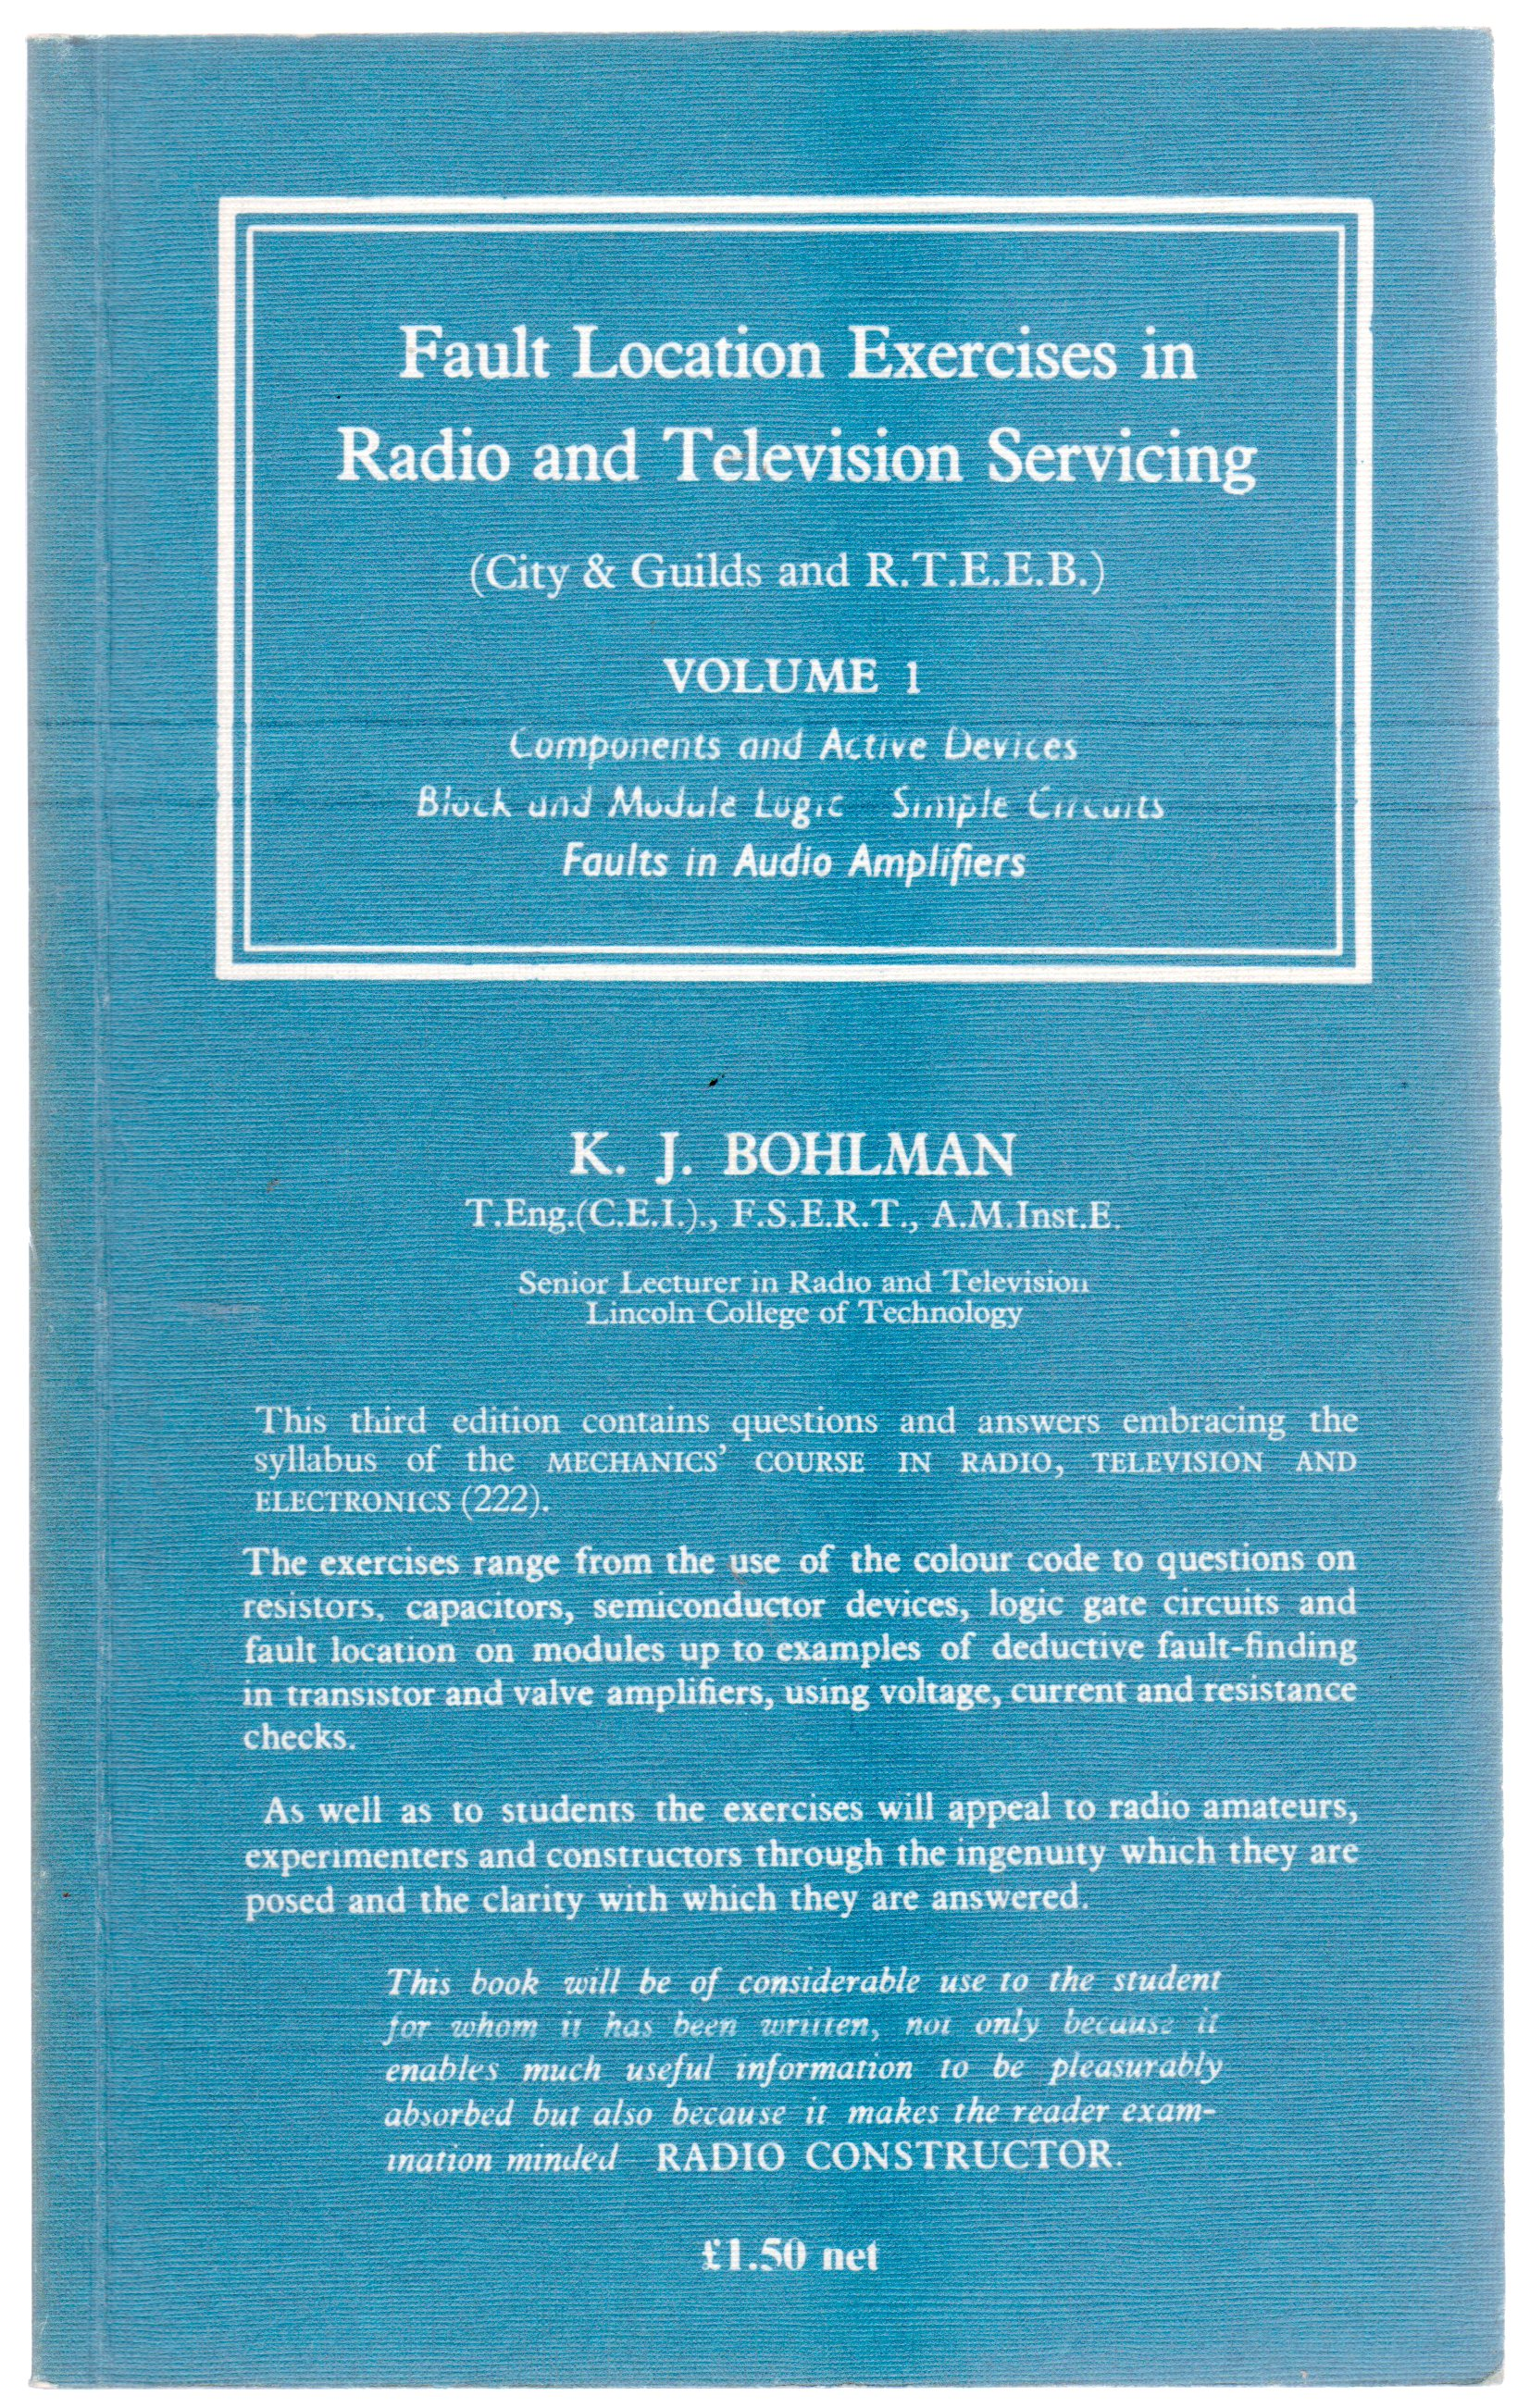 Image for Fault Location Exercises in Radio and Television Servicing : Volume 1